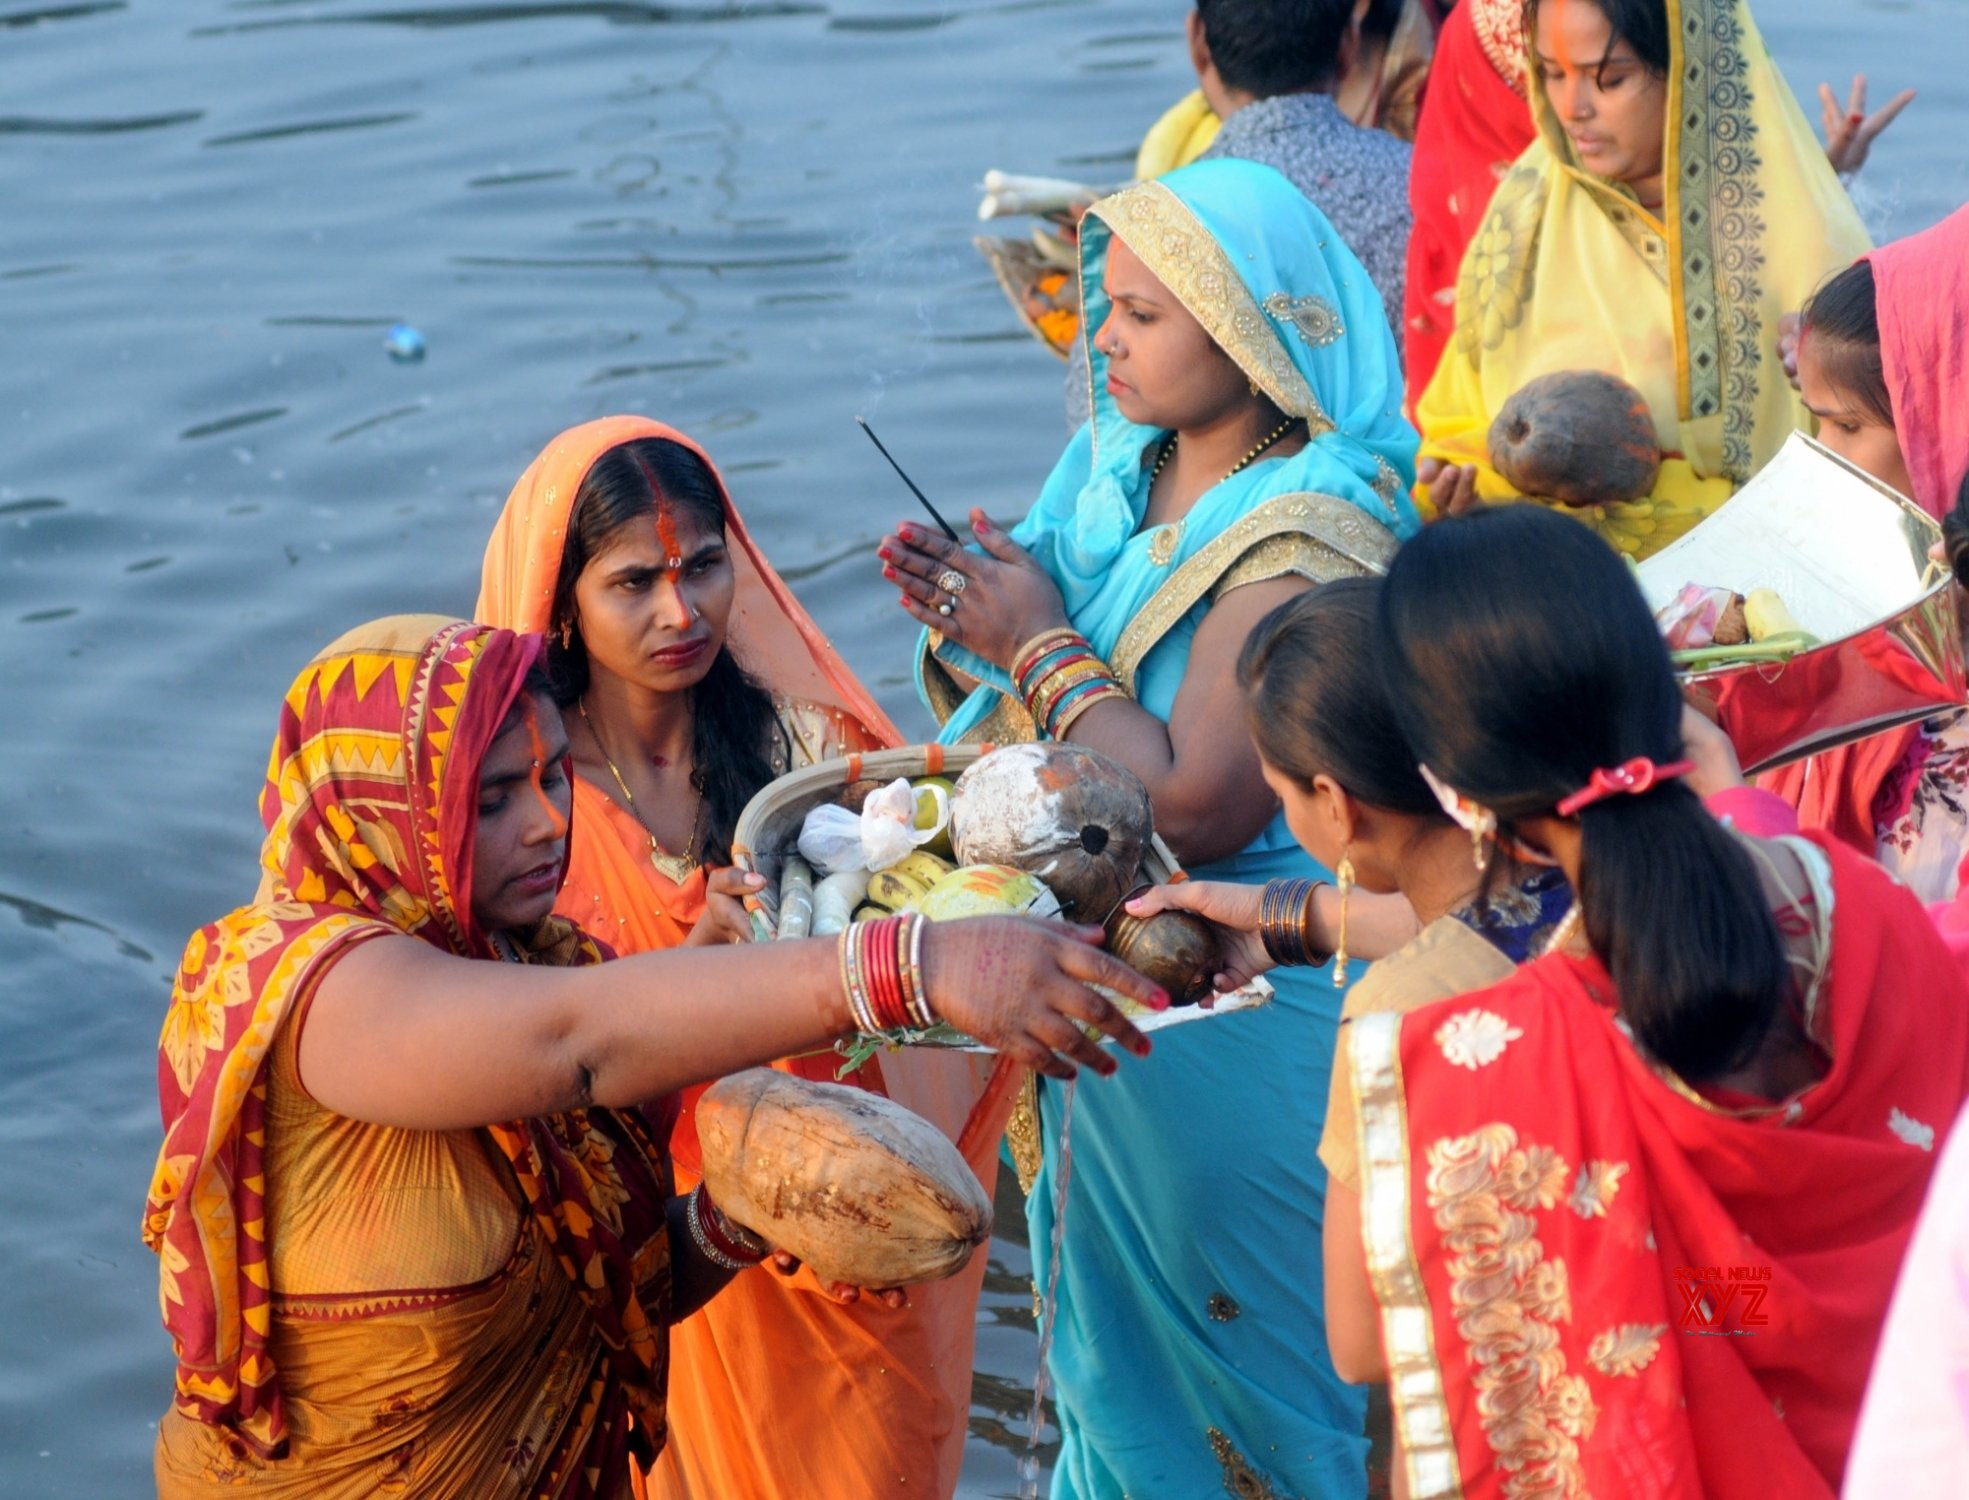 Crowds, many without masks, at ghats of Hindon as devotees offers prayers for Chhath